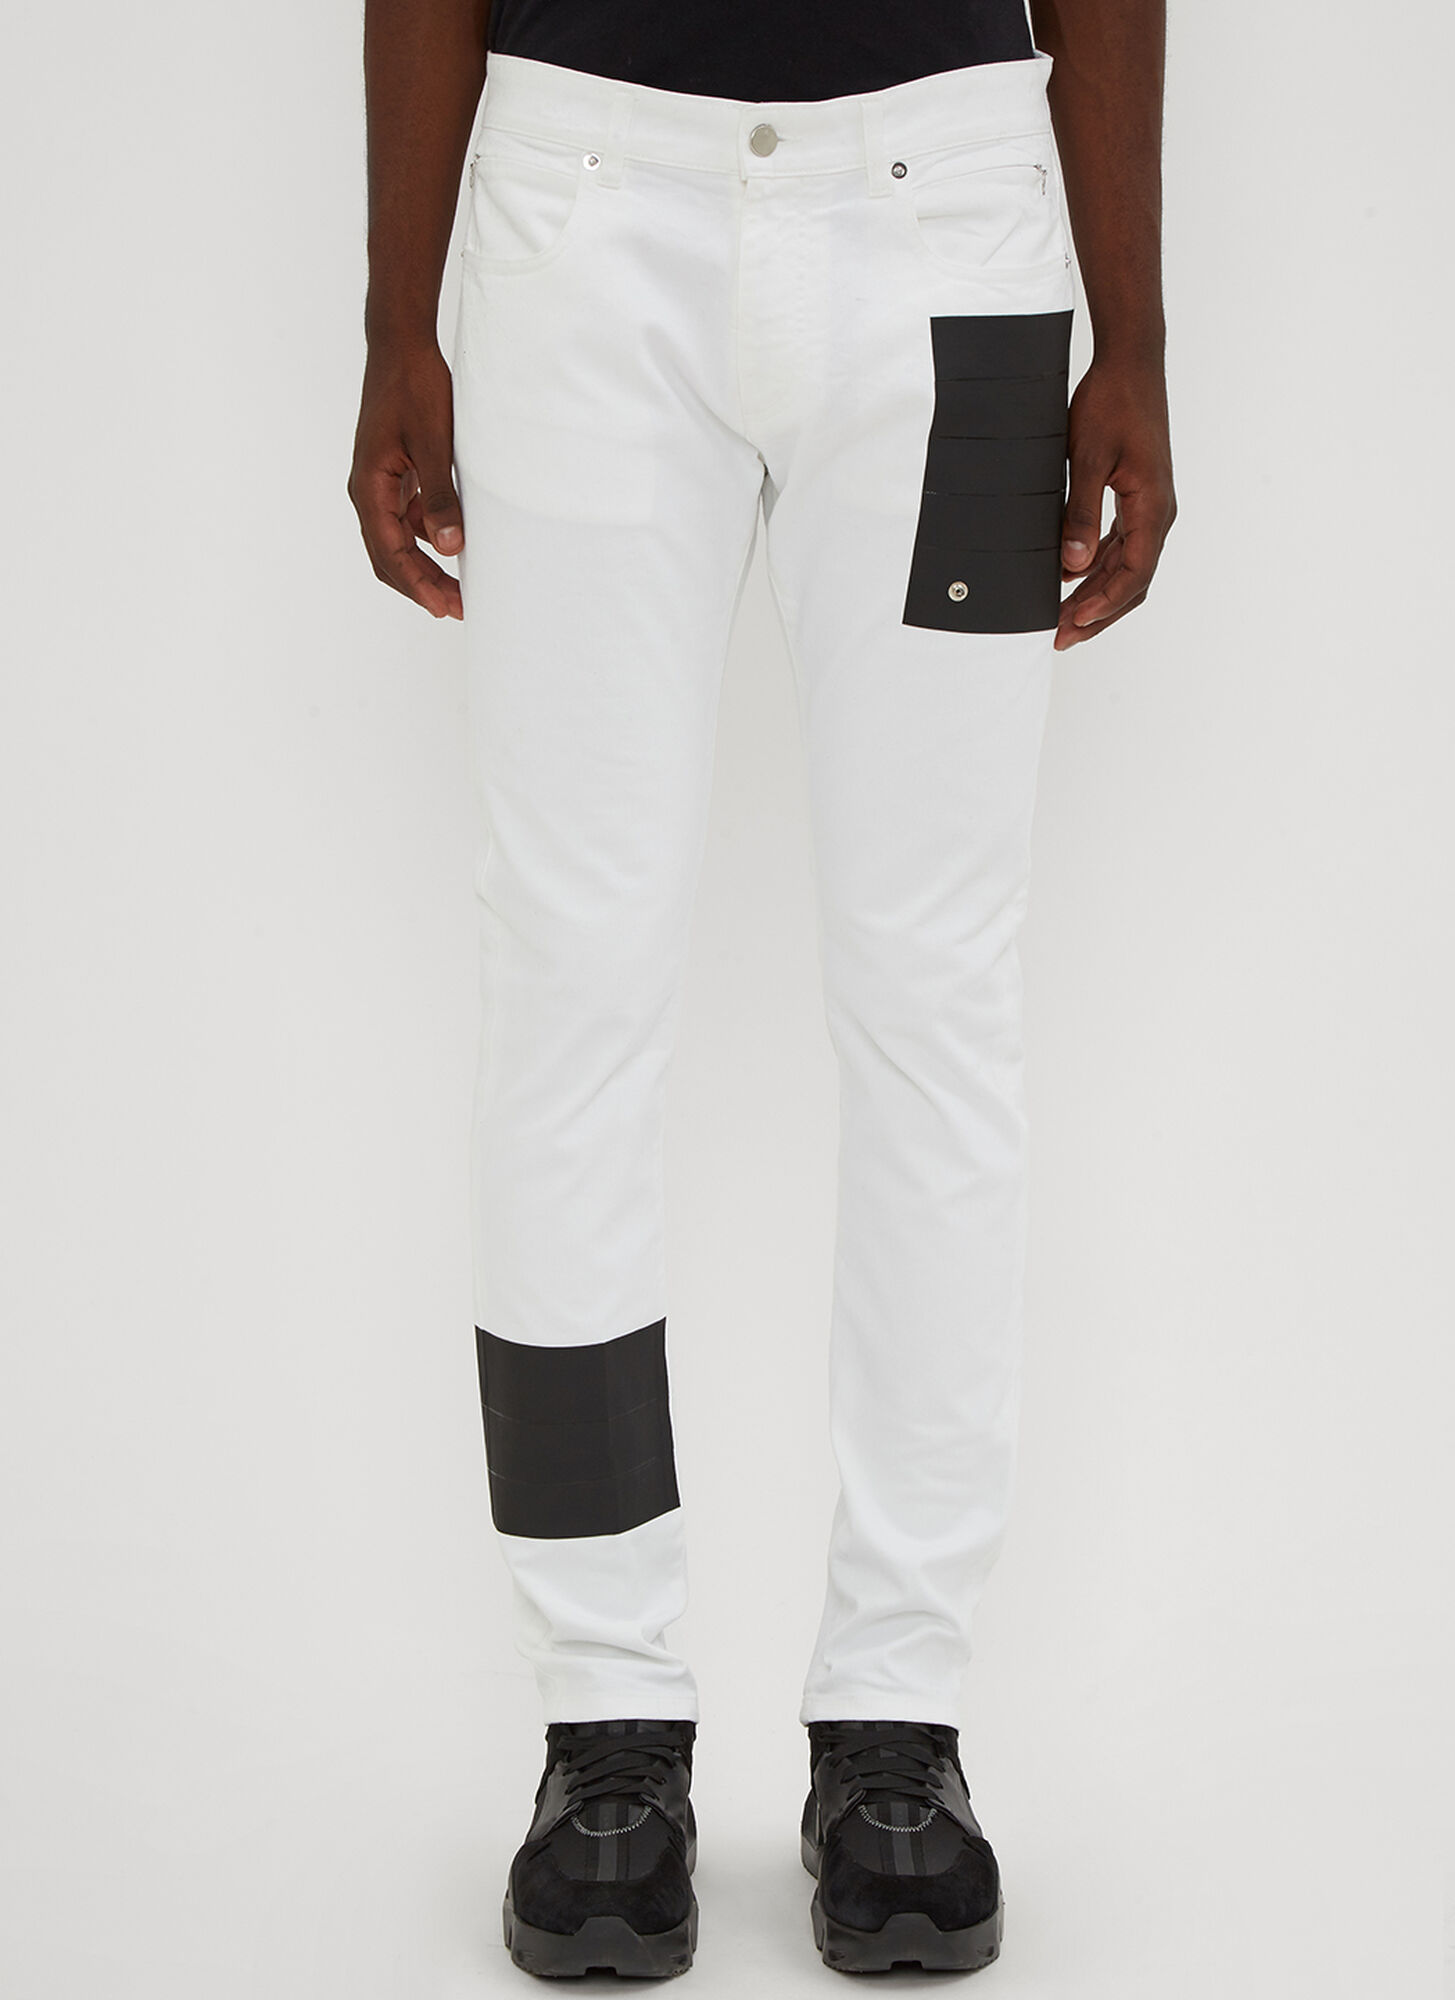 1017 ALYX 9SM Taped Jeans in White size 32